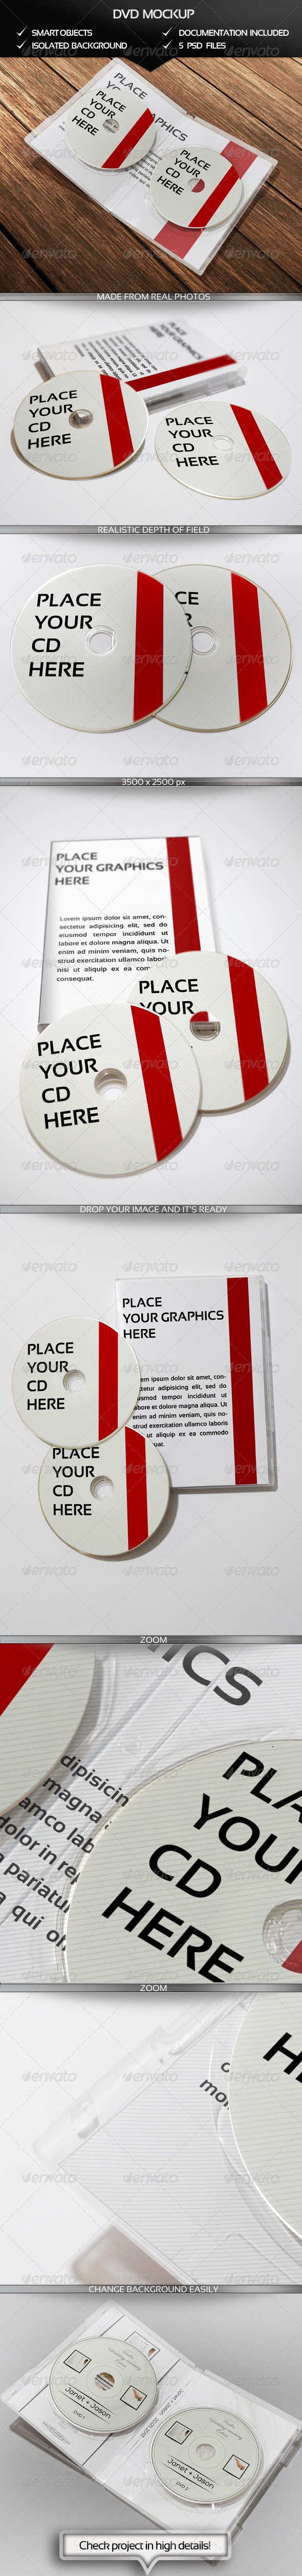 DVD Mockup - Discs Packaging